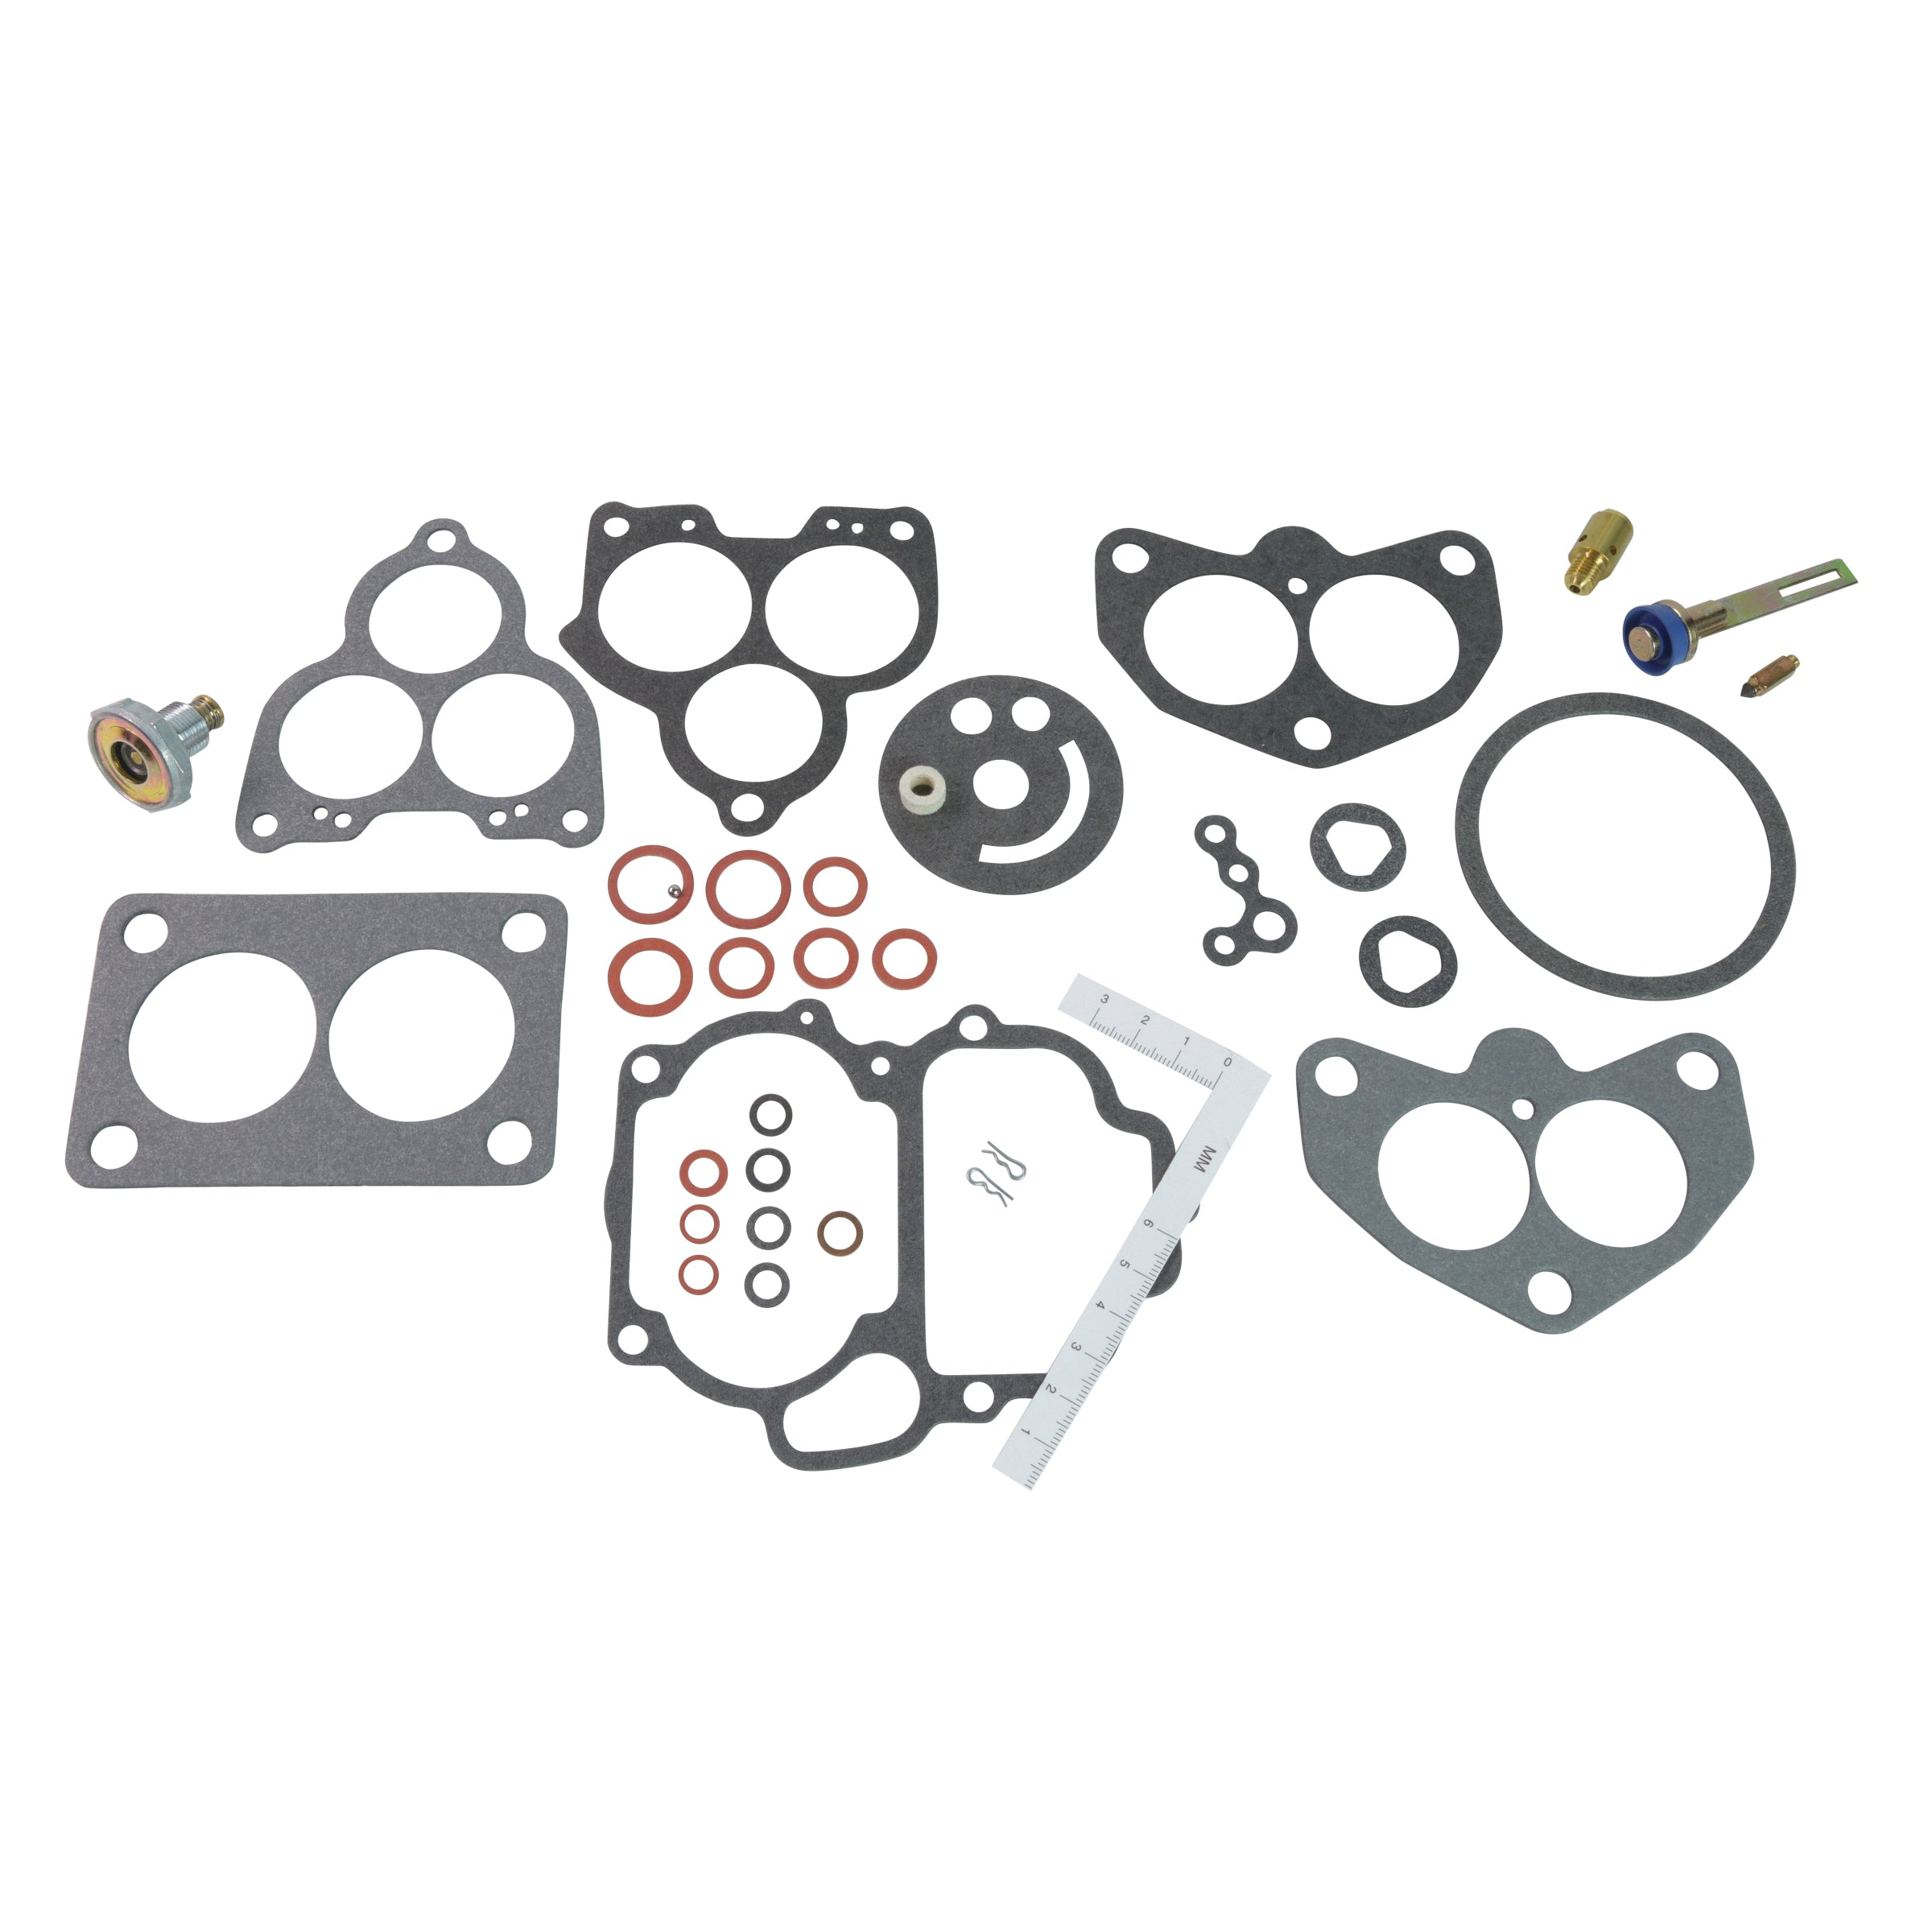 Carburetor Rebuild Kit (Holley 94)  • 1938-53 Ford Passenger & 1938-47